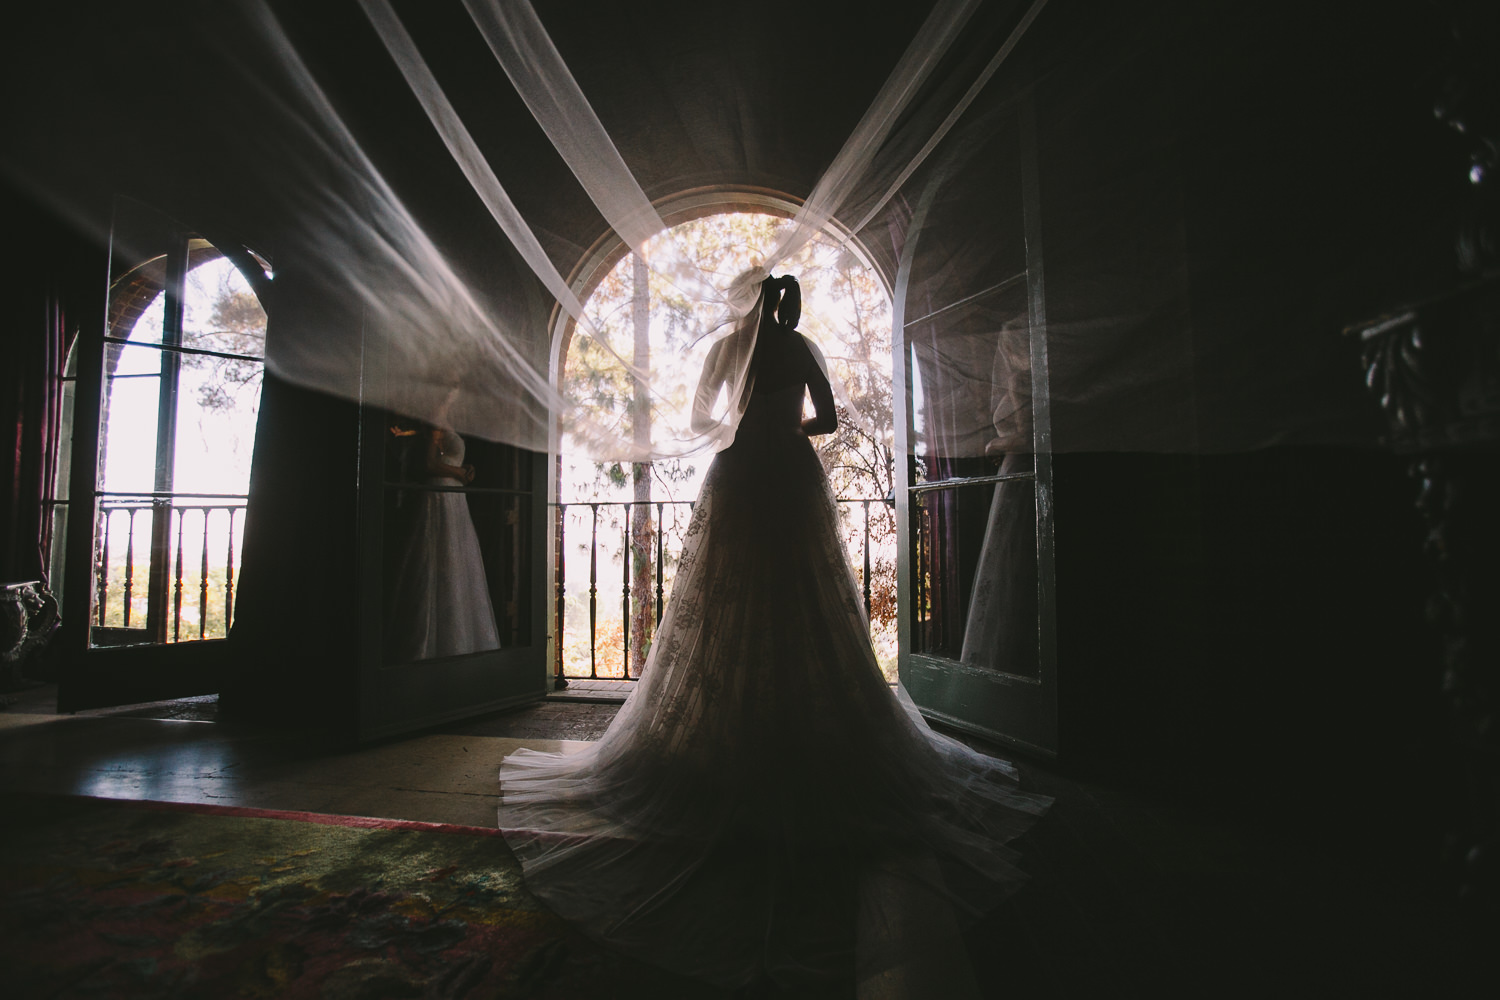 Rose McGowan Wedding at Paramour Estate - Another stunning shot of the bride